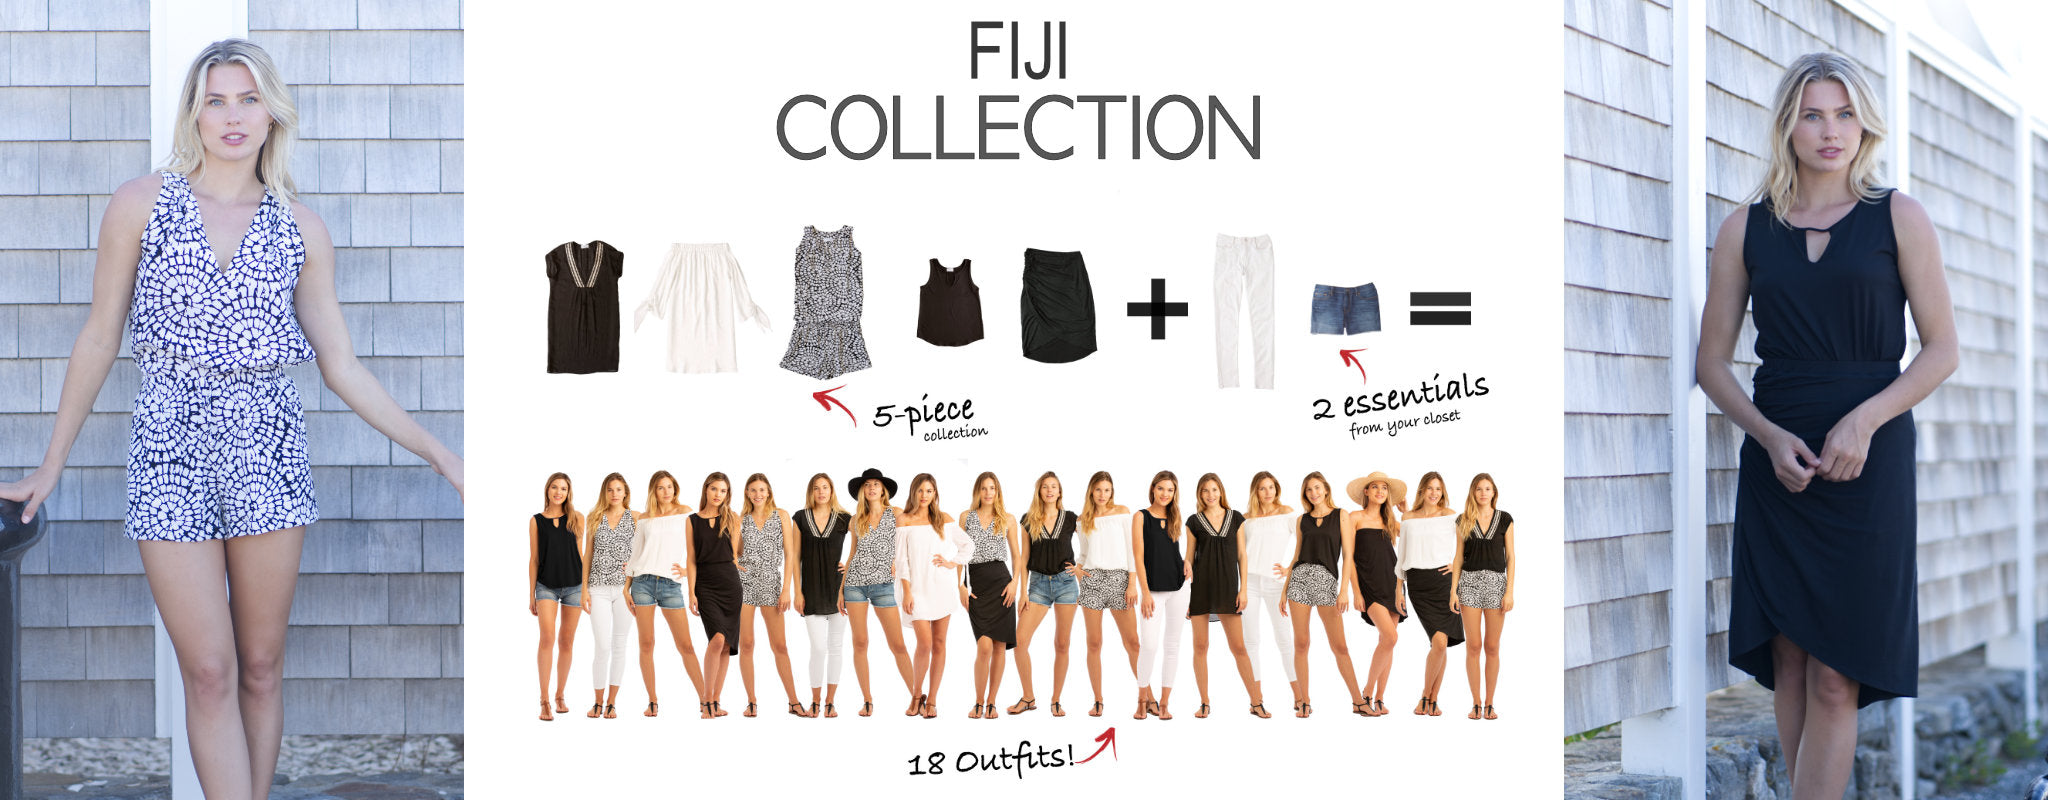 Fiji Collection: 5 items = 18 outfits